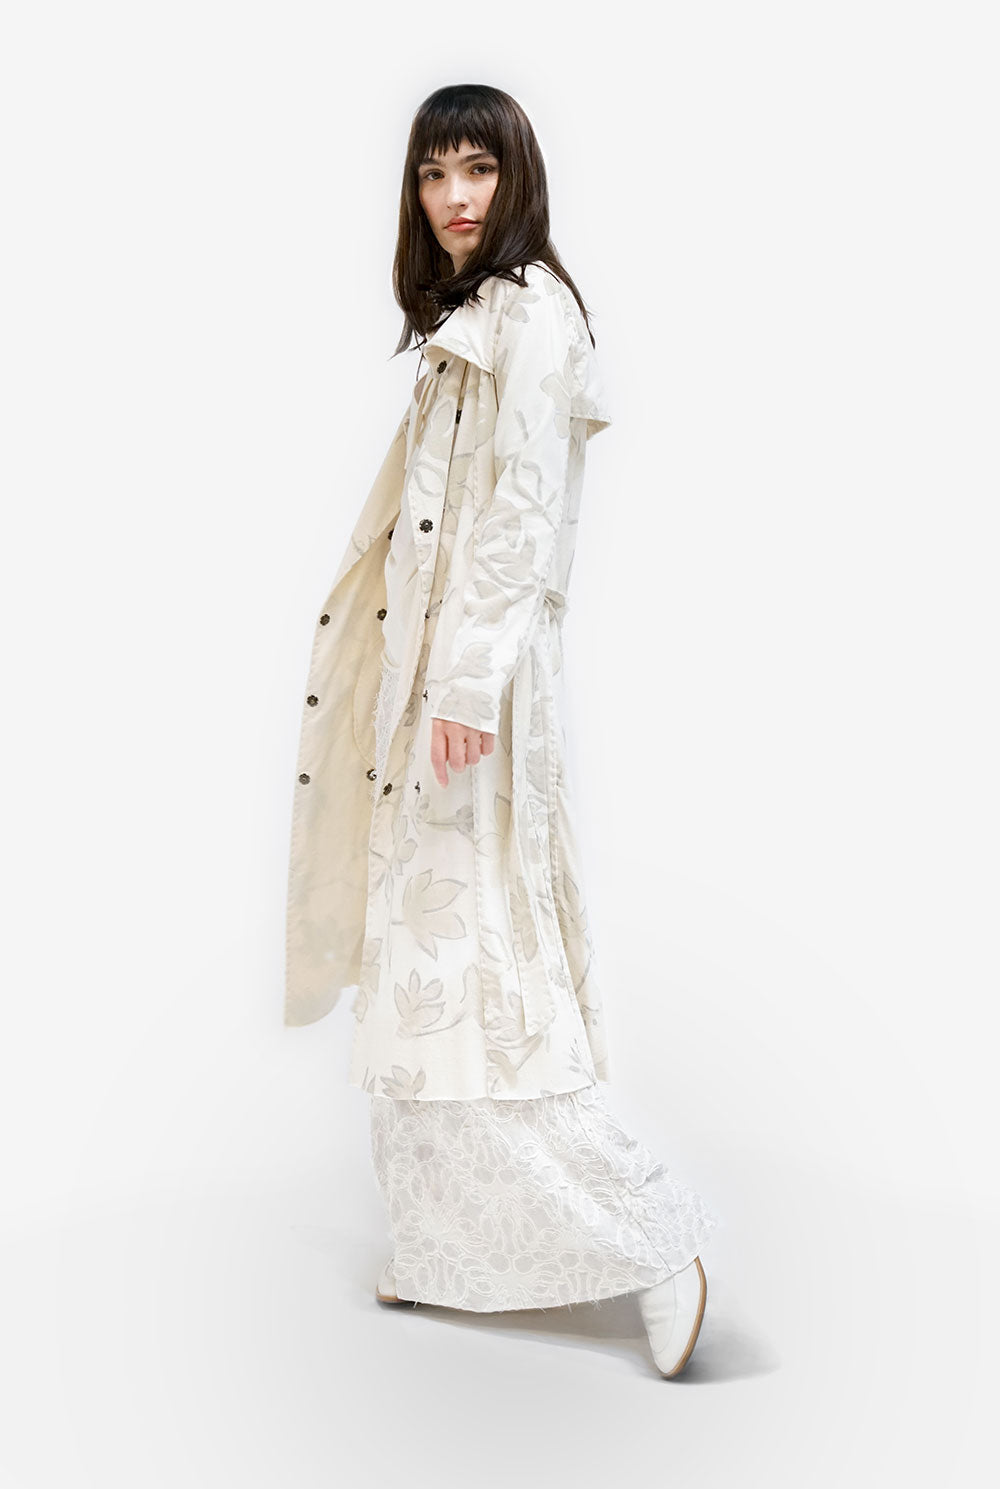 Alabama Chanin The Florence Trench Coat made with Organic Cotton Layered on Model